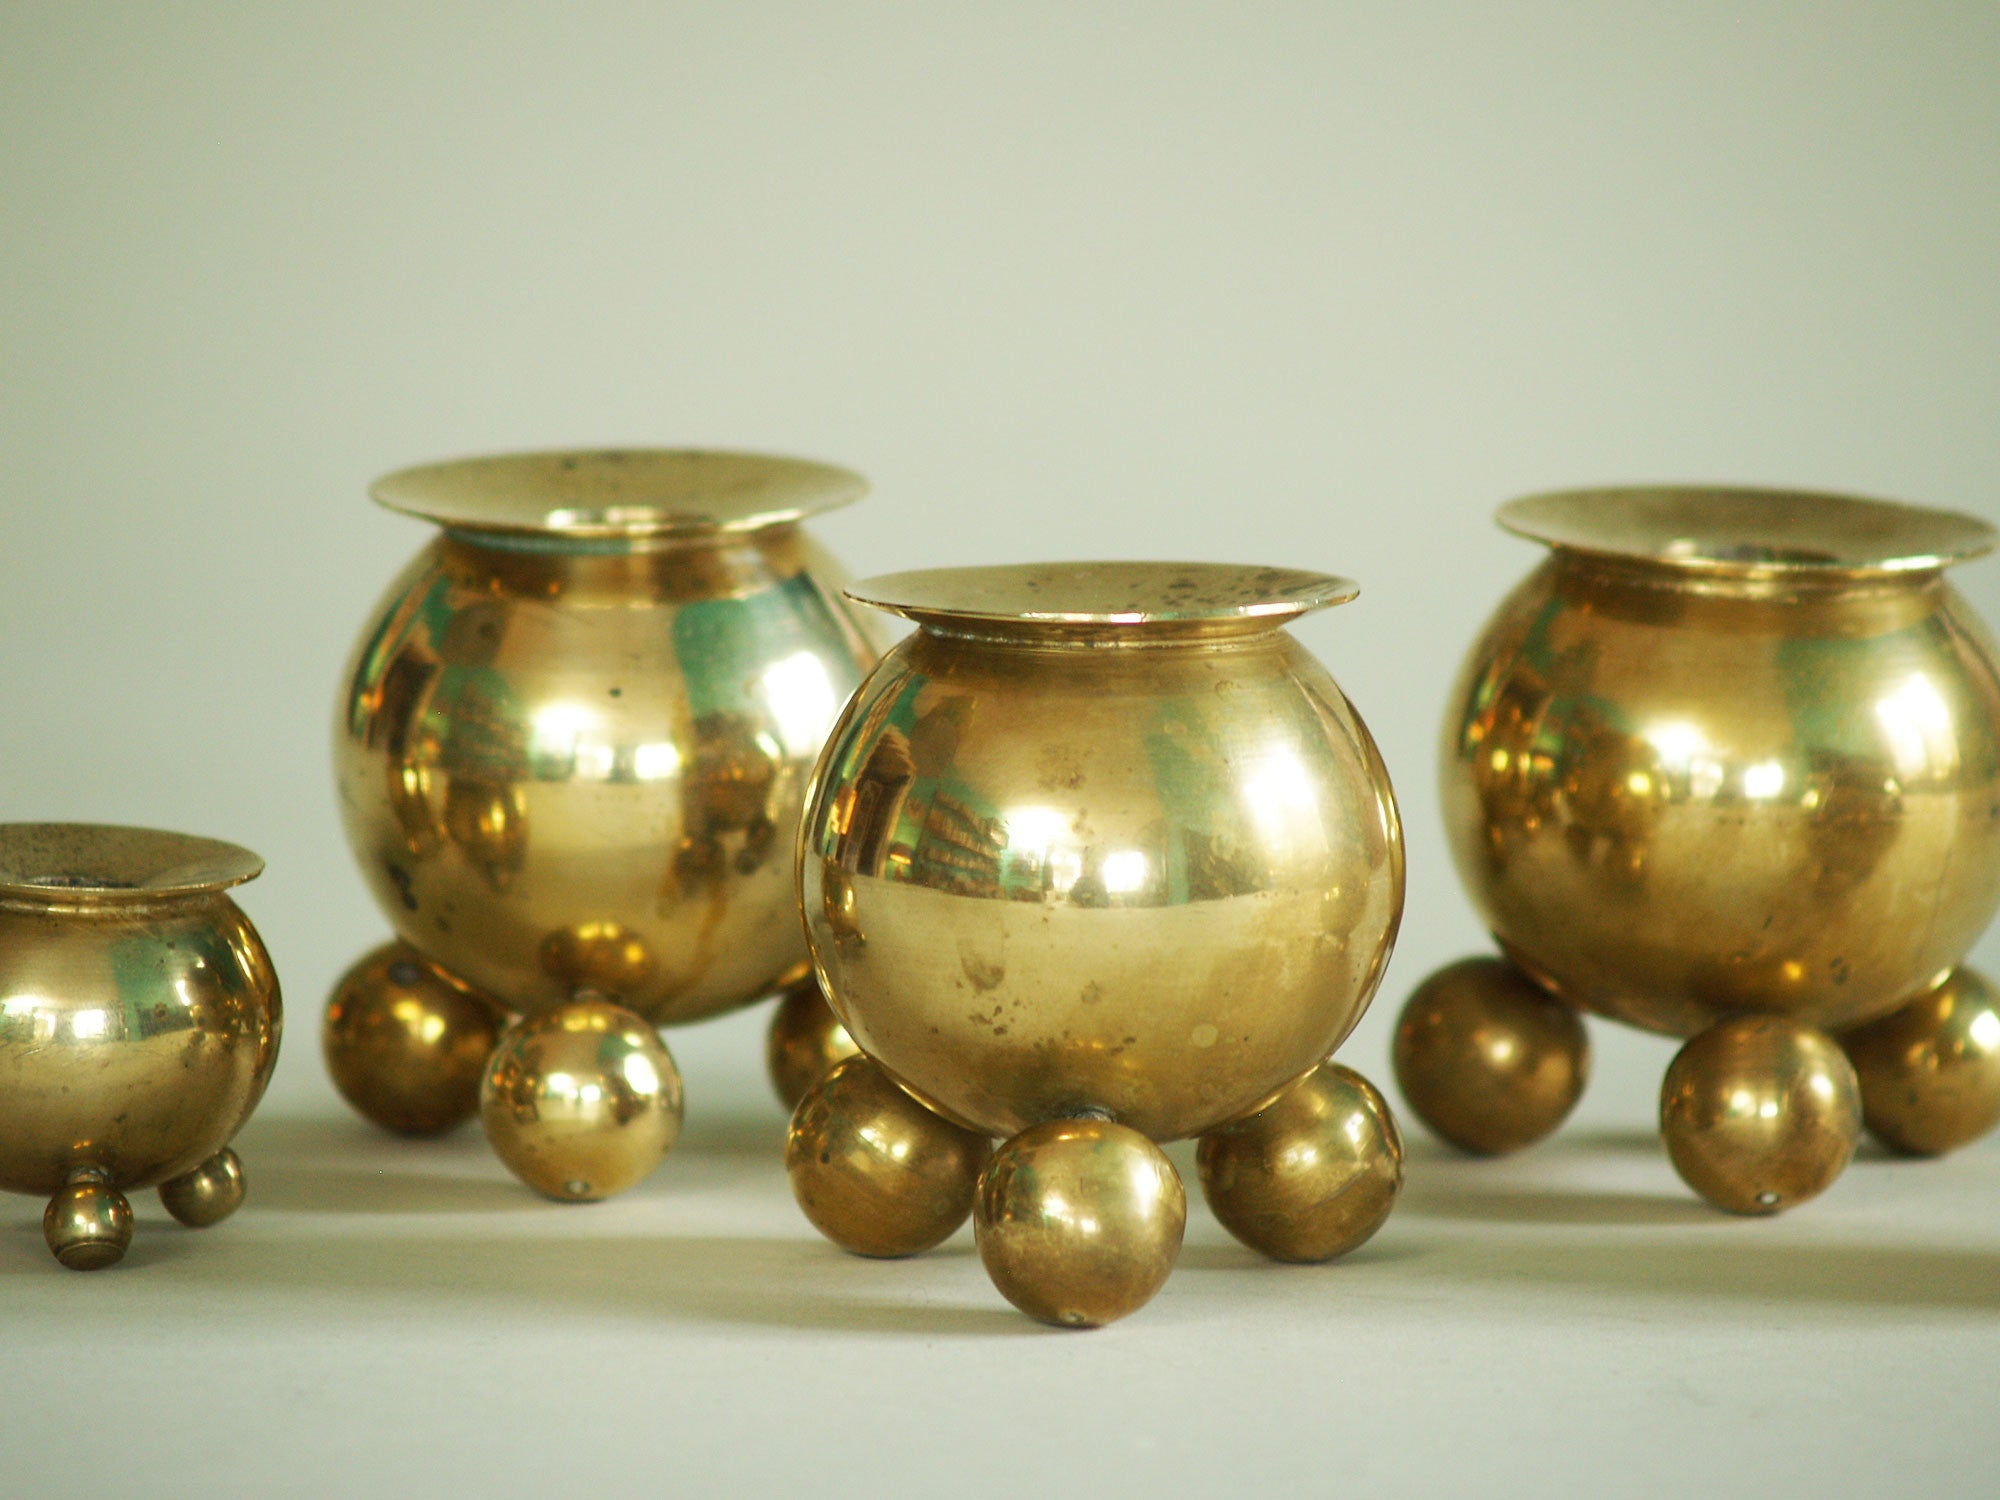 Suite de six bougeoirs par Gusum Bruk, Suède (vers 1900)..Set of six candle holders by Gusum Bruk, Sweden (circa 1900)